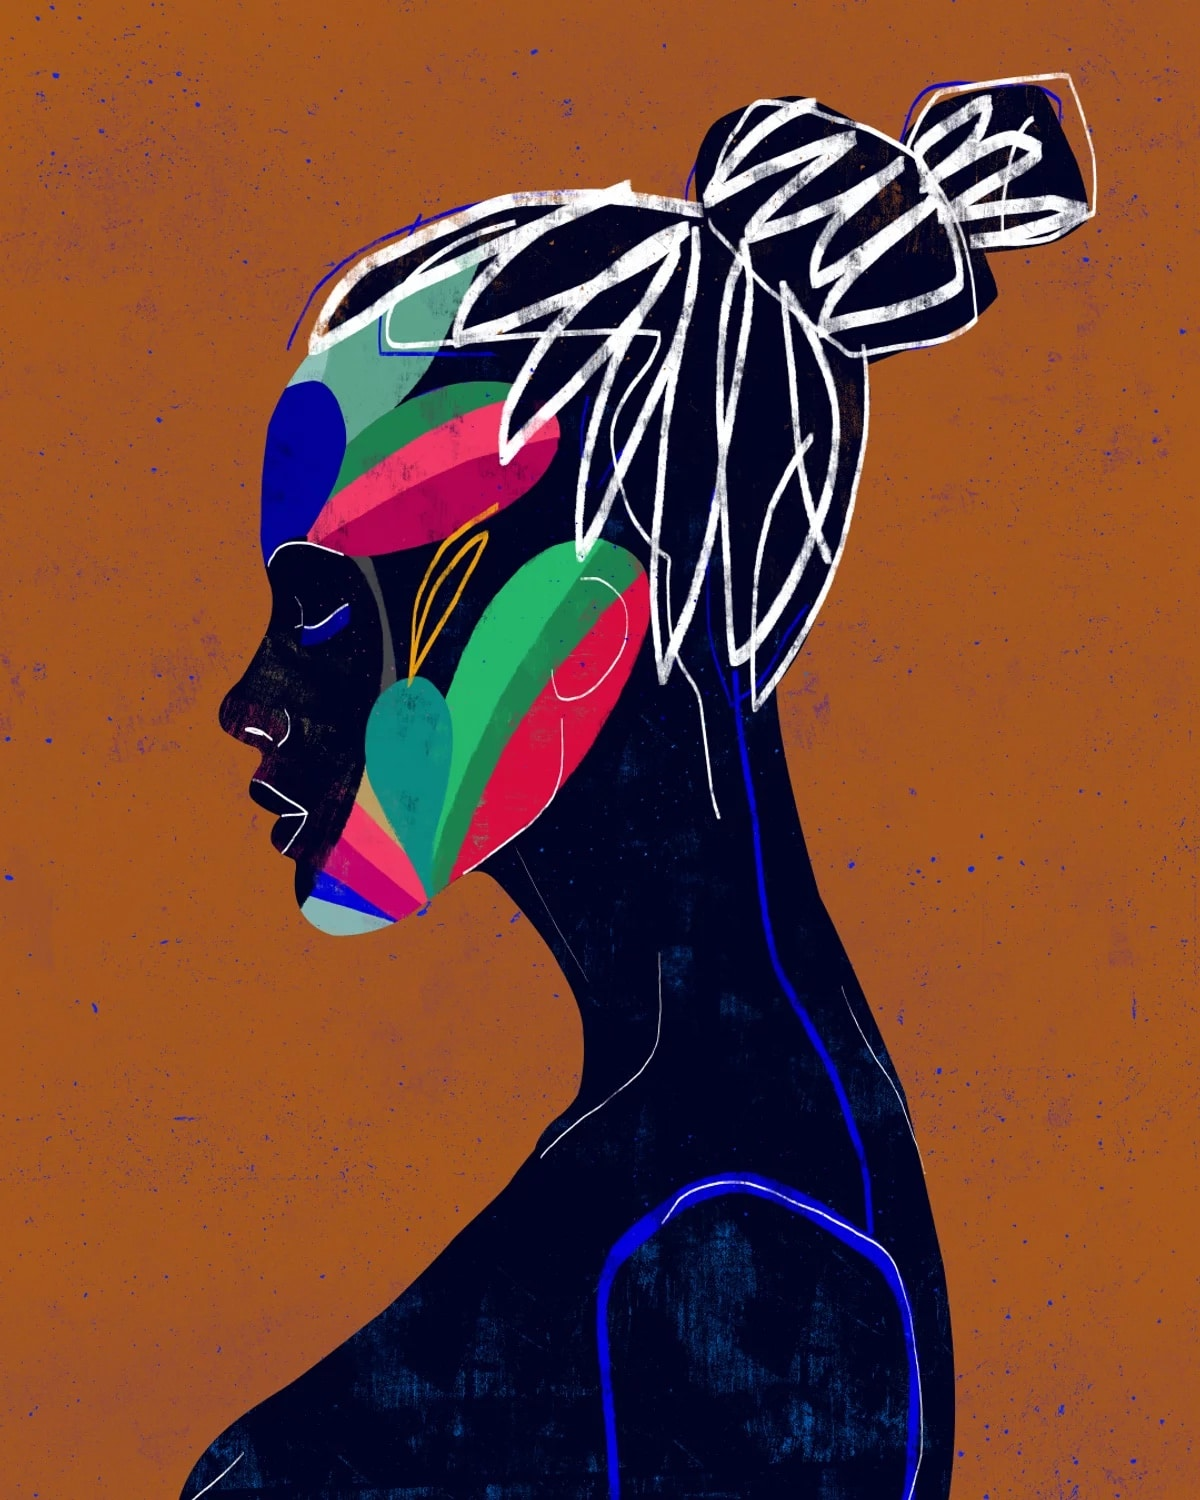 Colorful Geometric Shapes and Line Graphic Art Prints by Luciano Cian